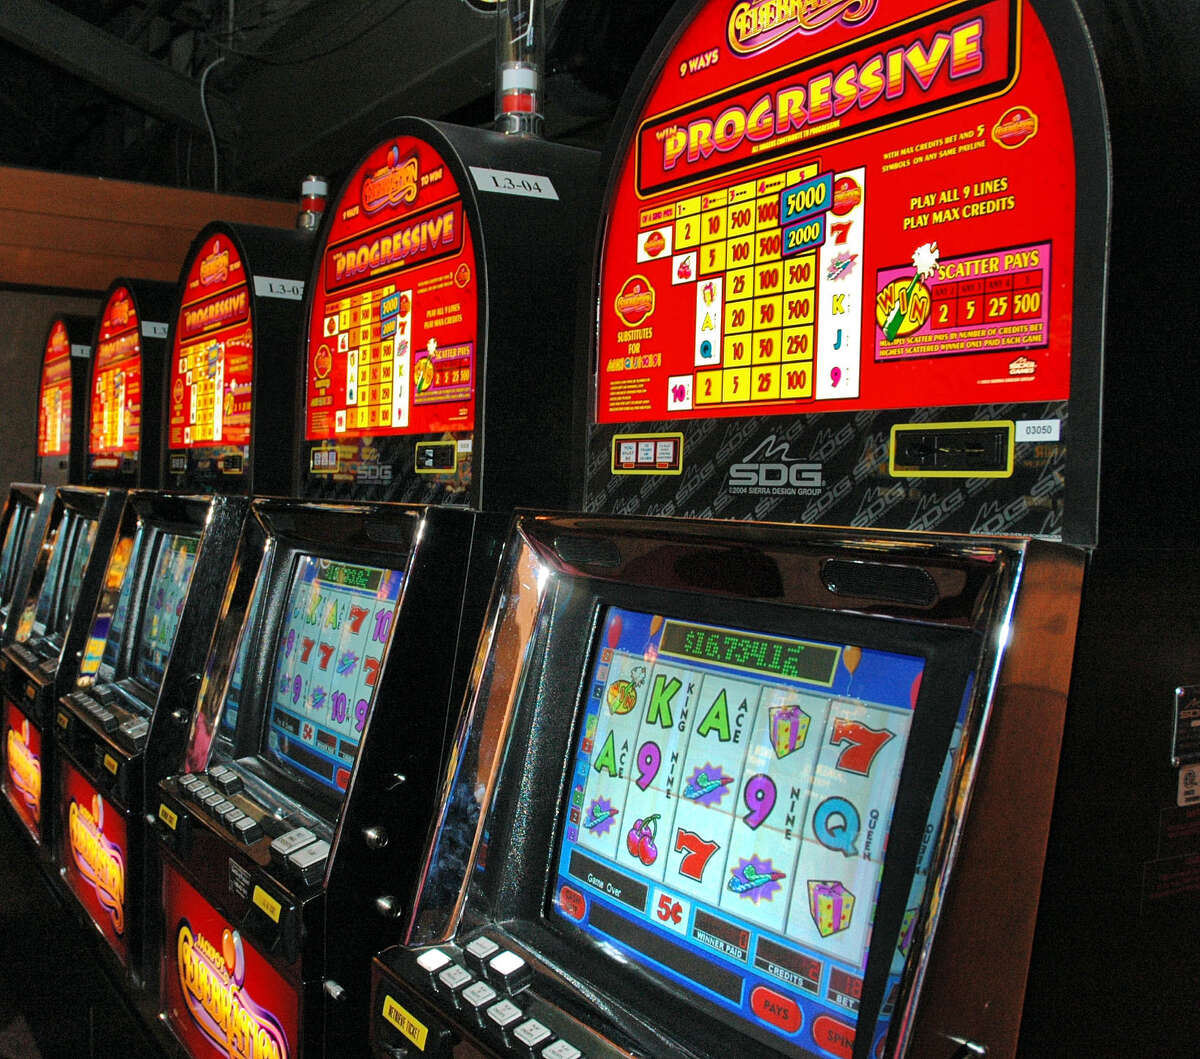 A bank of VLT's, at the Saratoga Casino Hotel on Tuesday, Jan. 24, 2006. City's like Saratoga Springs that host VLTs are provided state aid. However, Gov. Andrew Cuomo is considering eliminating the aid from the state's 2022 budget.